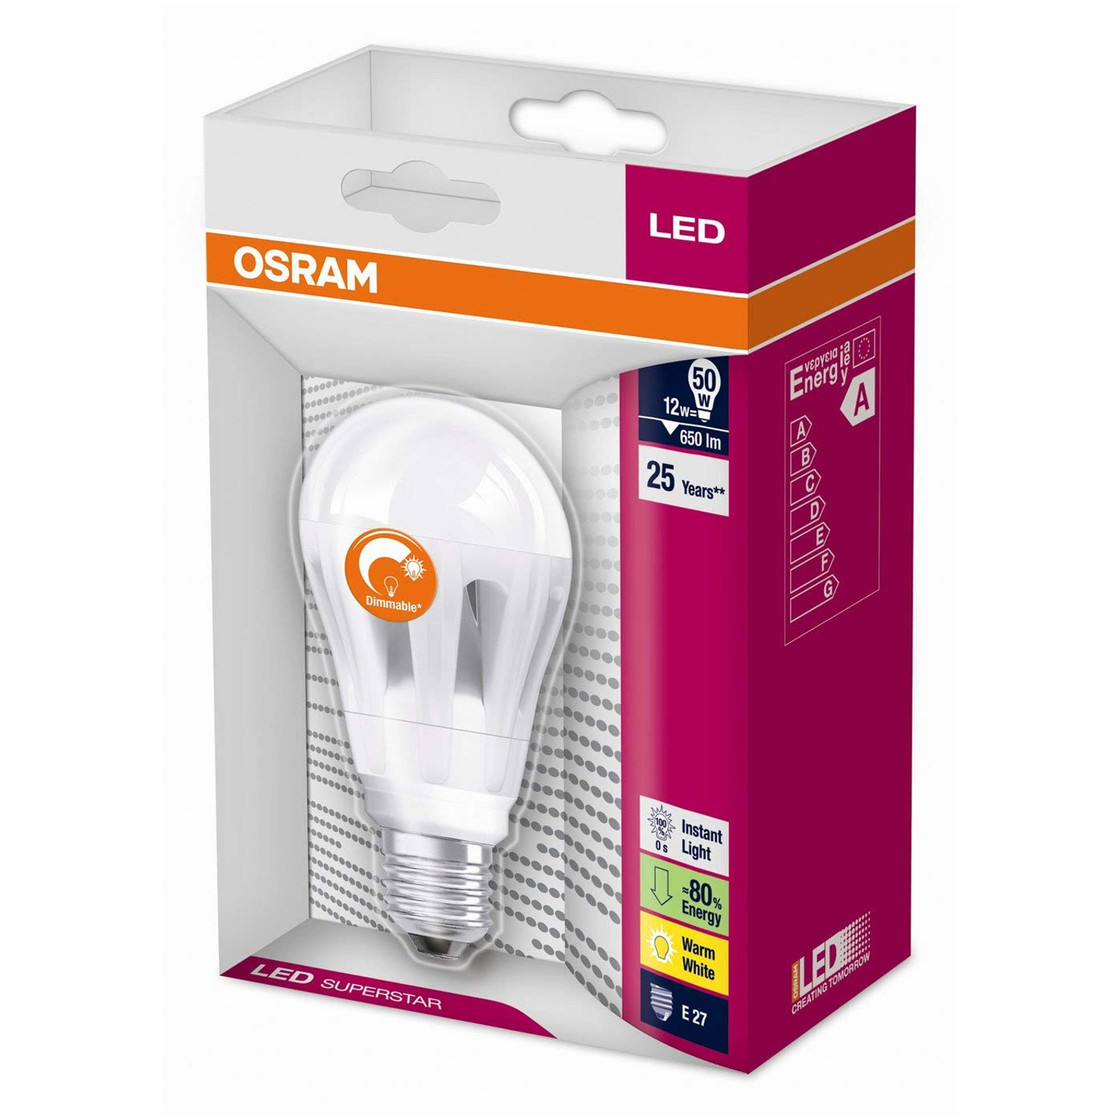 osram led superstar classic agl dimmbar matt e27 12w 50w gl hlampe 12 99. Black Bedroom Furniture Sets. Home Design Ideas